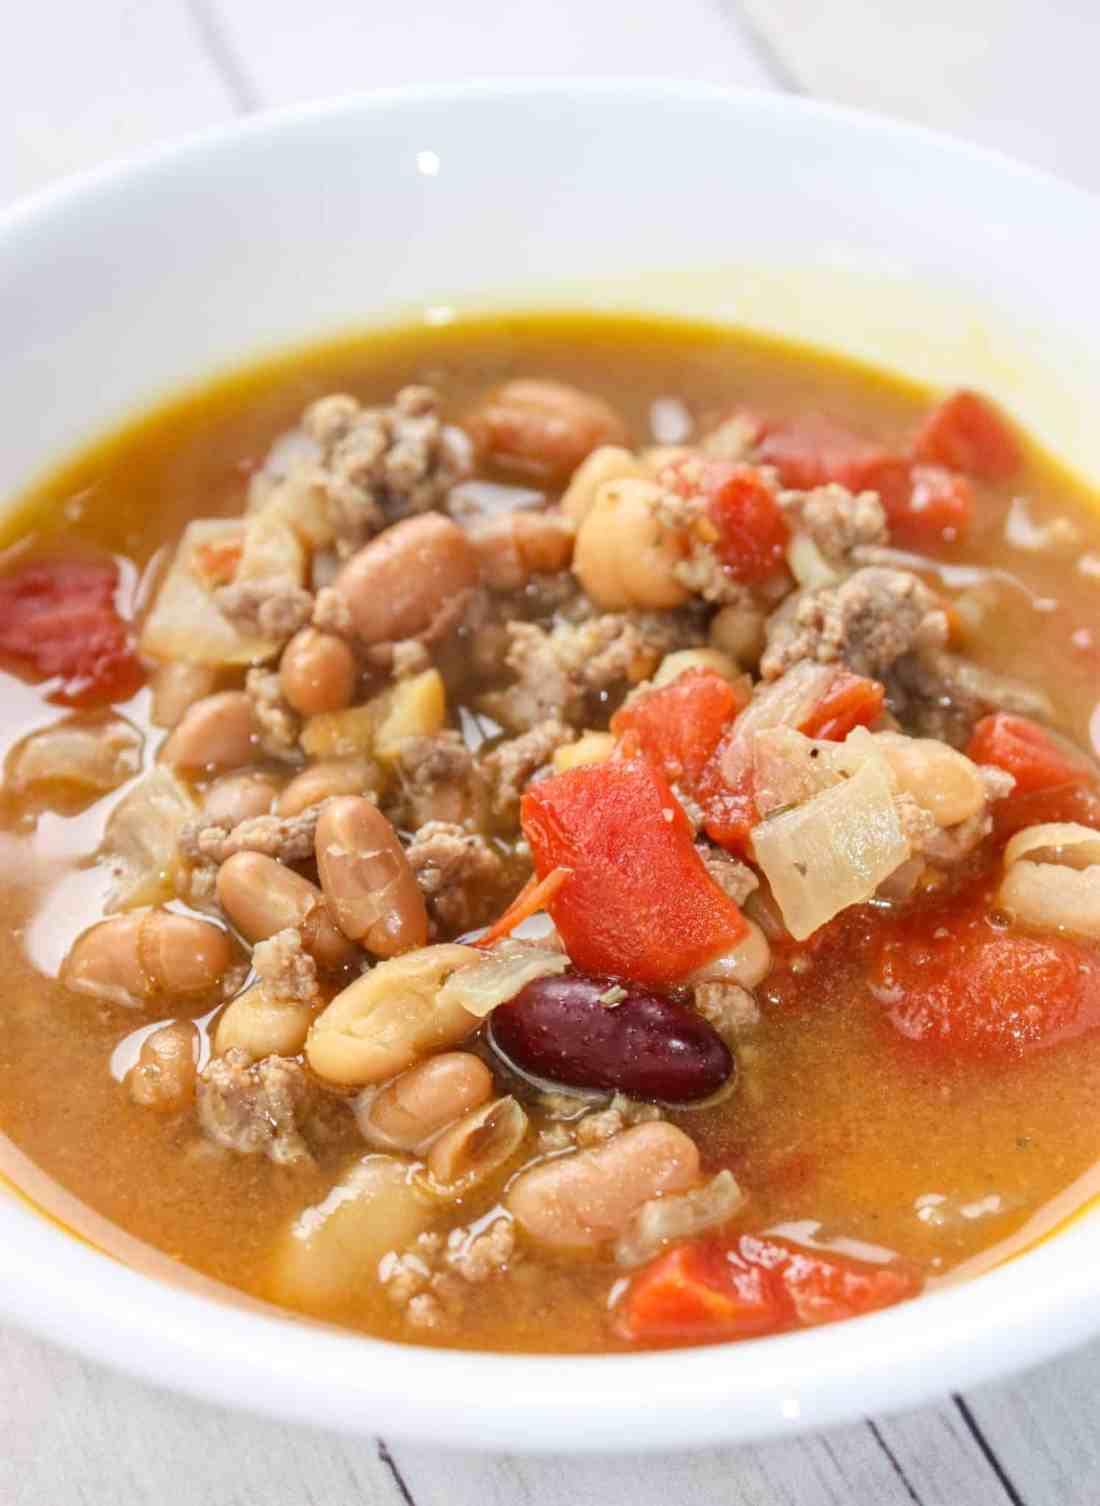 Instant Pot Beef and Bean Soup is an easy pressure cooker recipe that will delight your taste buds and warm your belly with each spoonful!